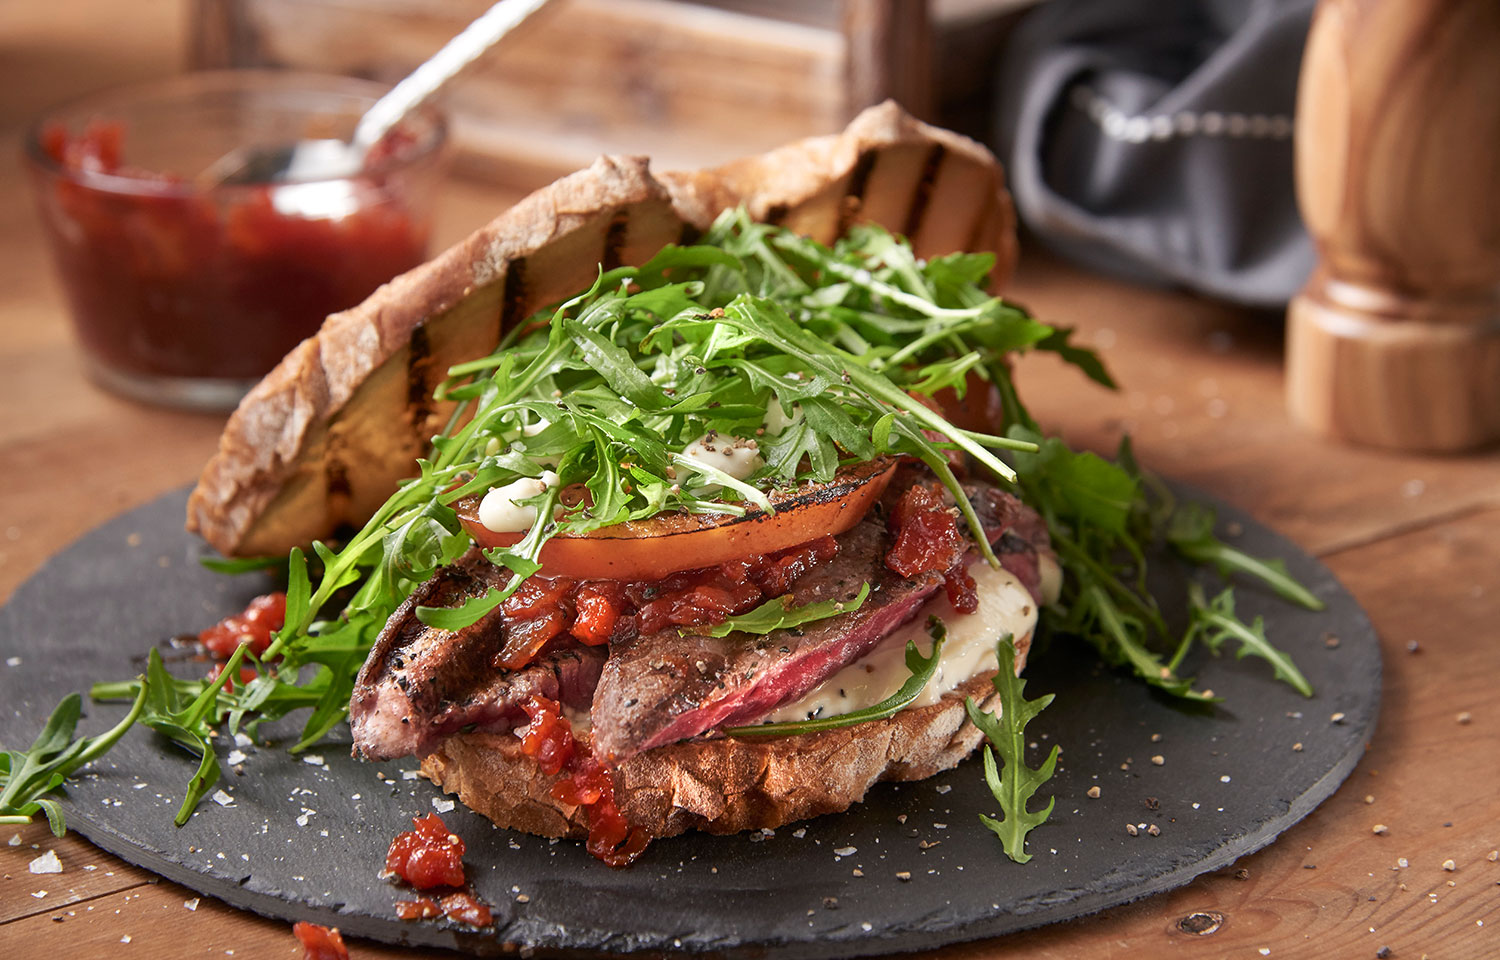 Fillet Steak Sandwich with Tomato Relish